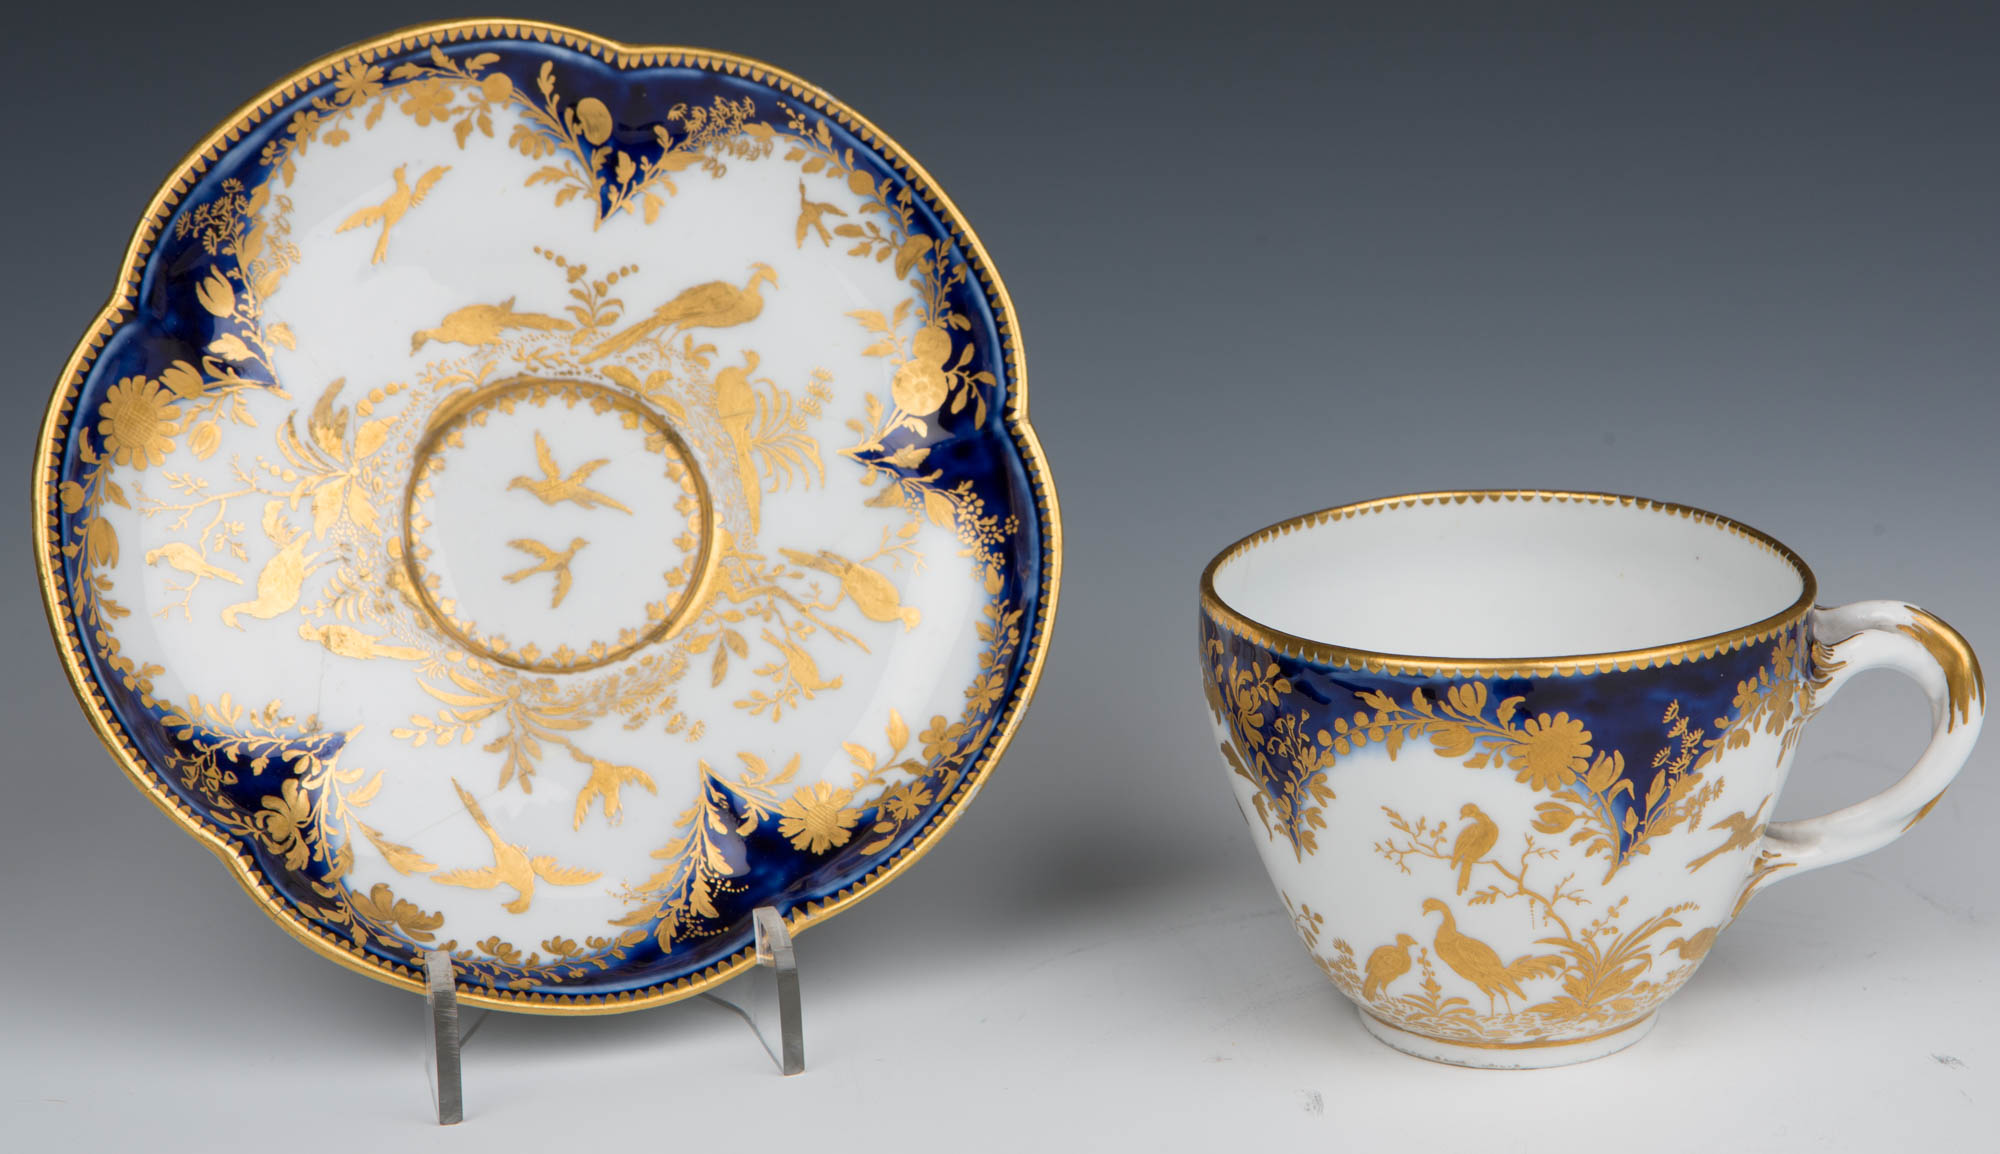 Two Chelsea cups and saucers, circa 1760.